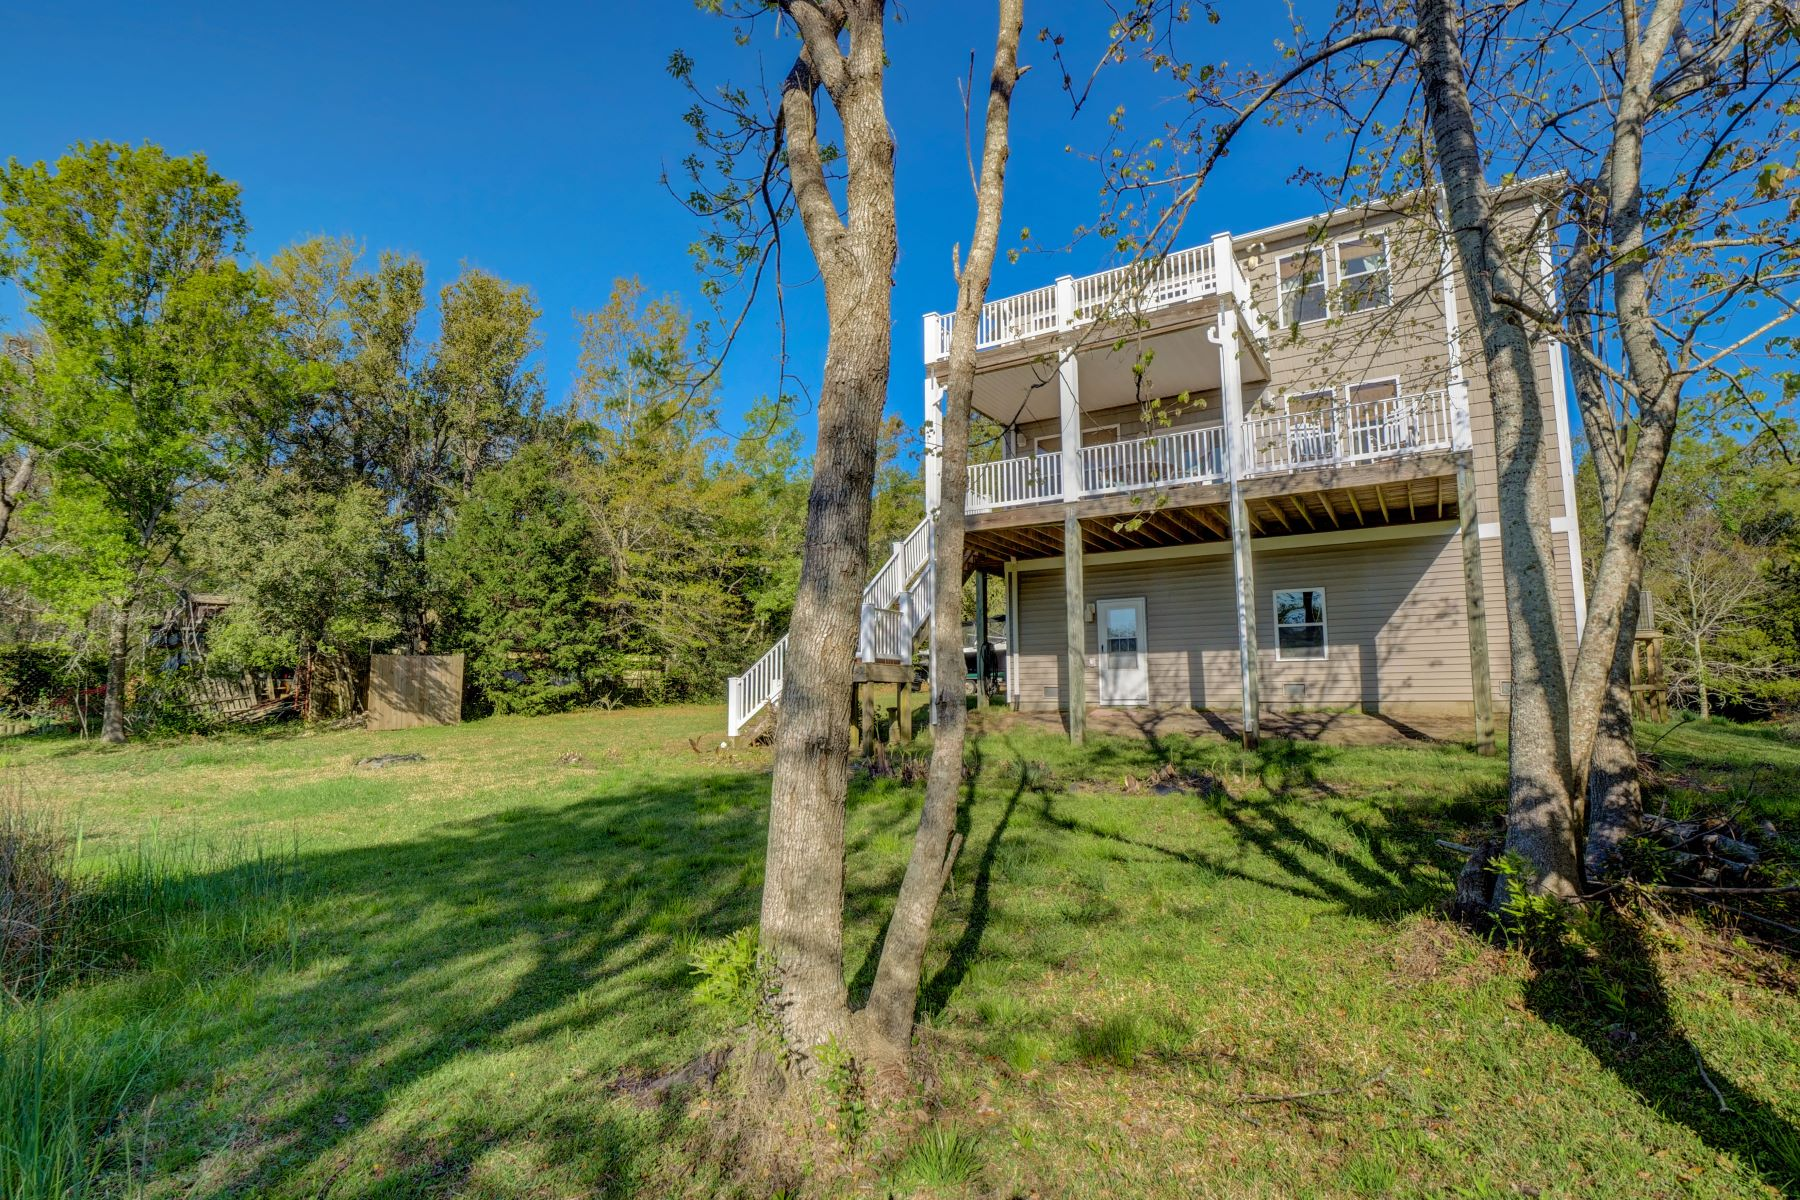 Single Family Homes for Active at Beautifully Crafted Coastal Family Home 409 Brierwood Trail Hampstead, North Carolina 28443 United States